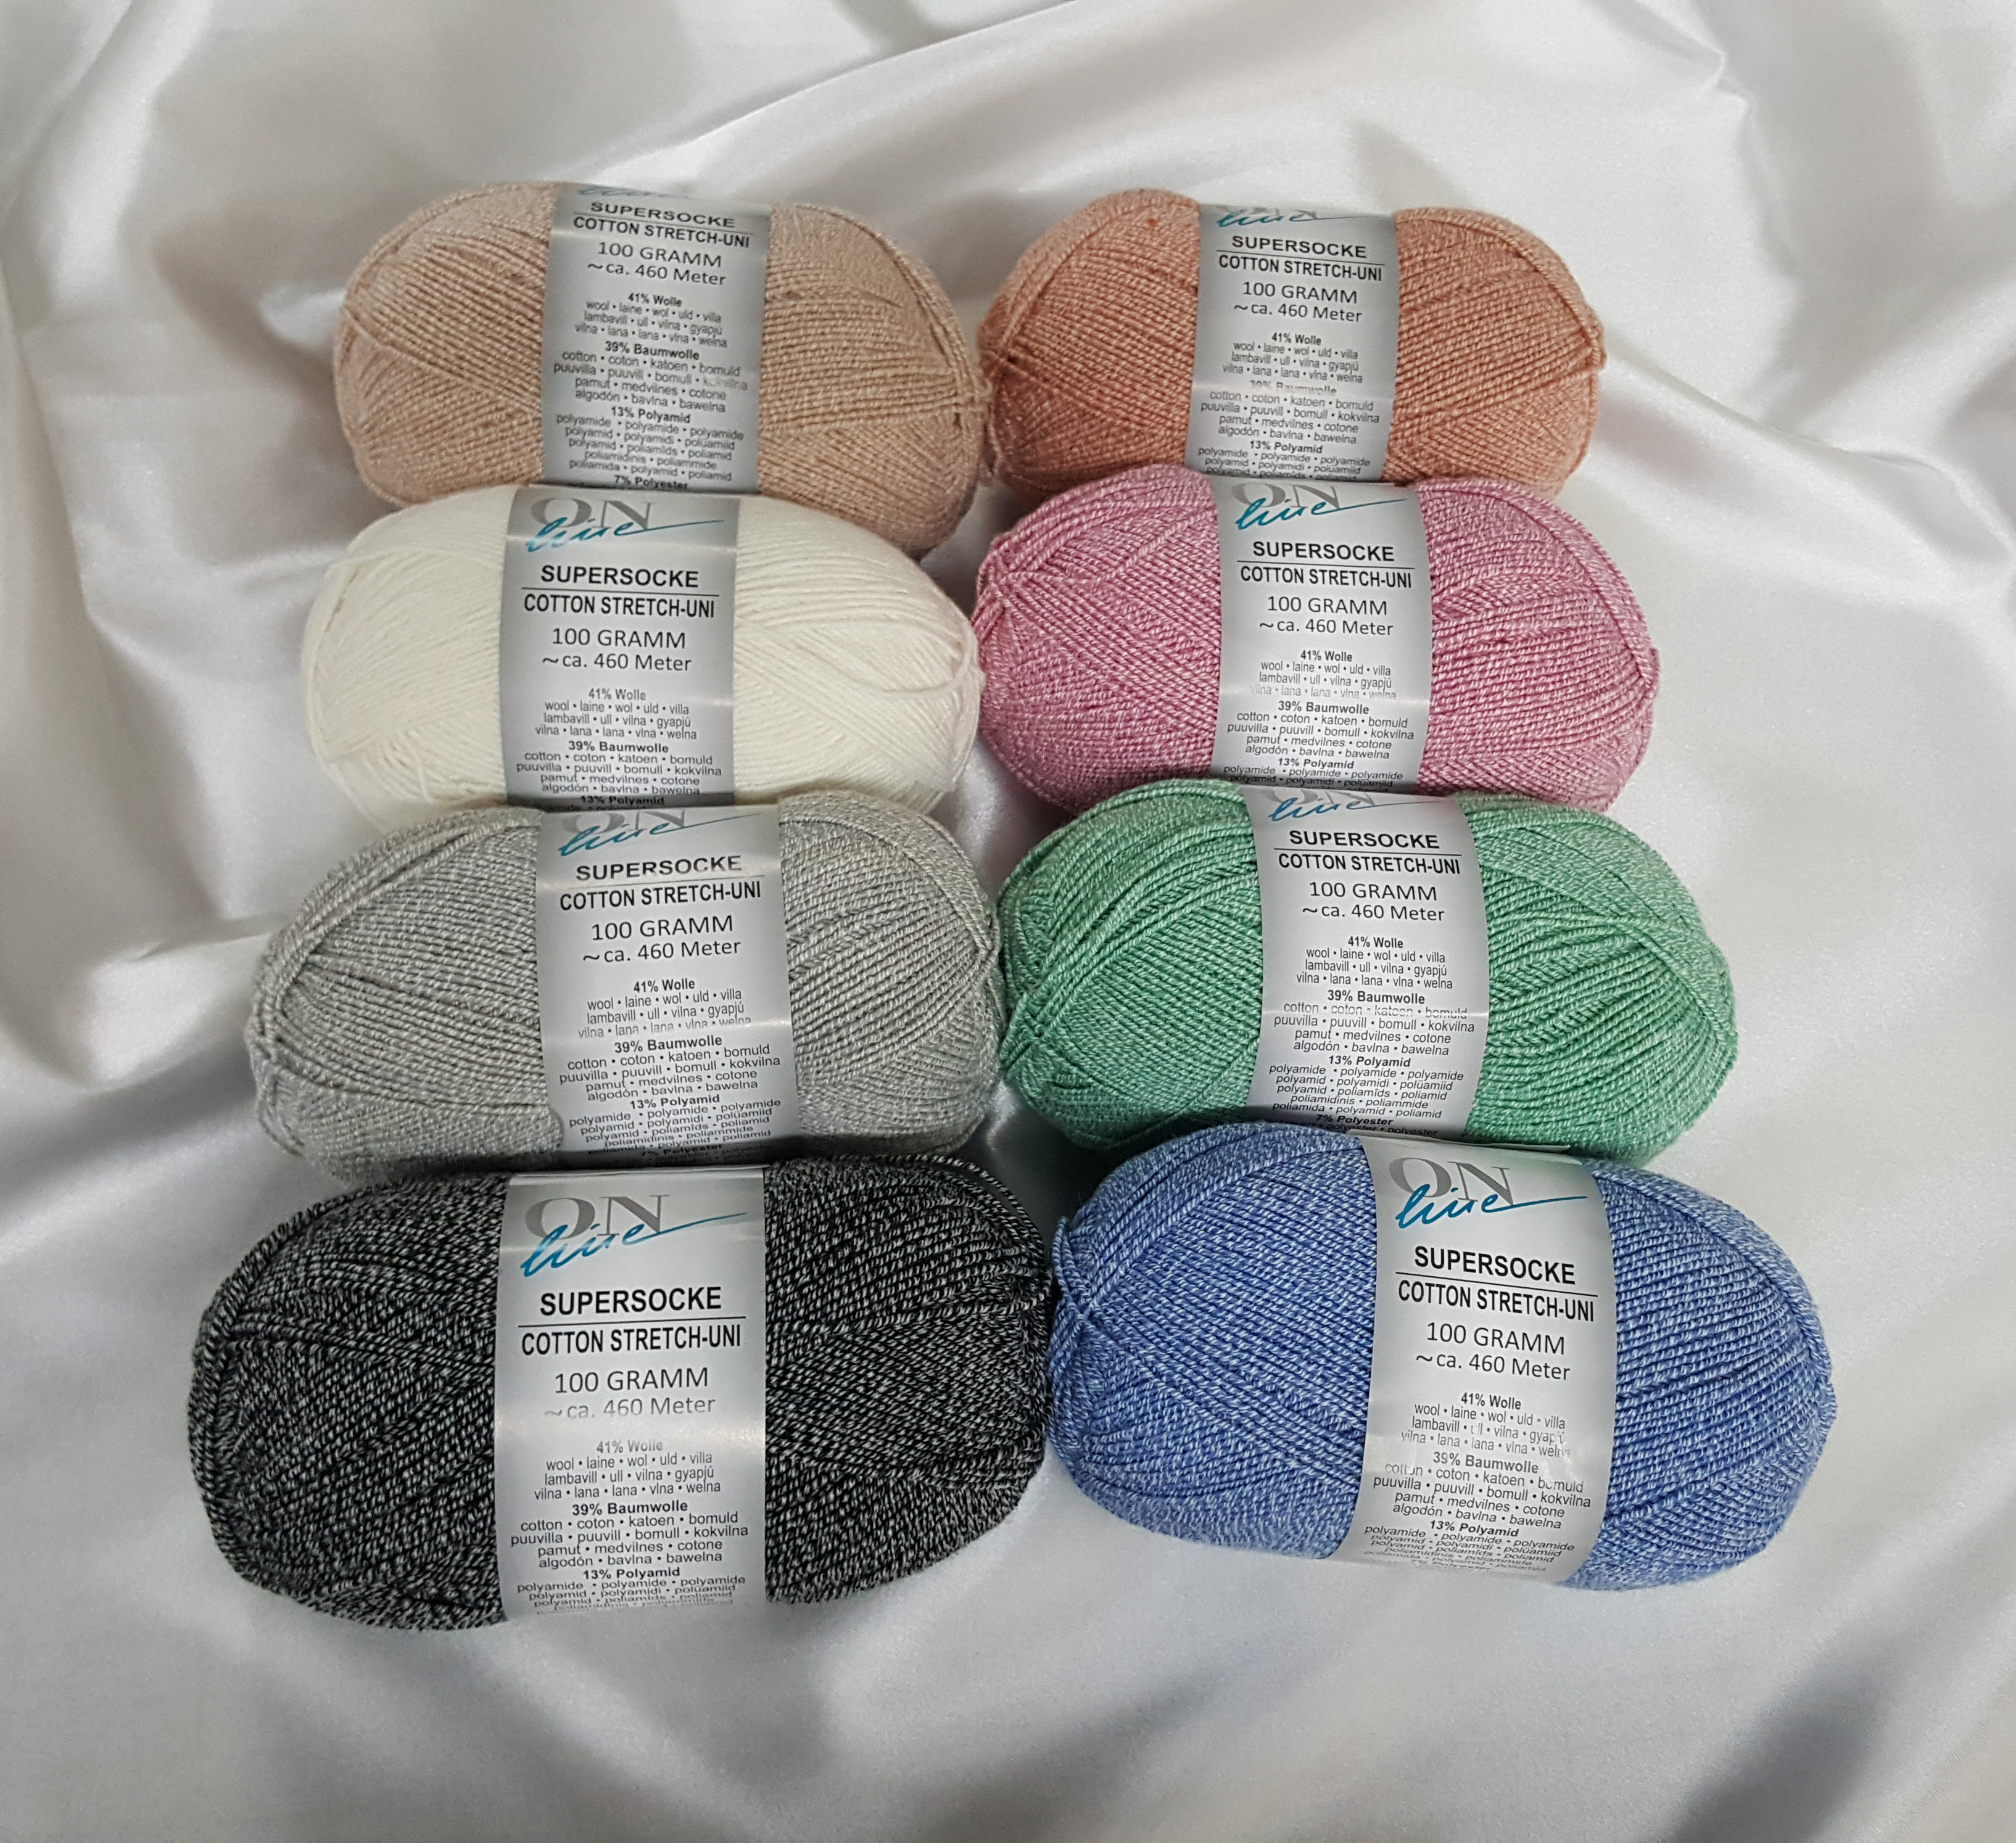 Supersock stretch cotton